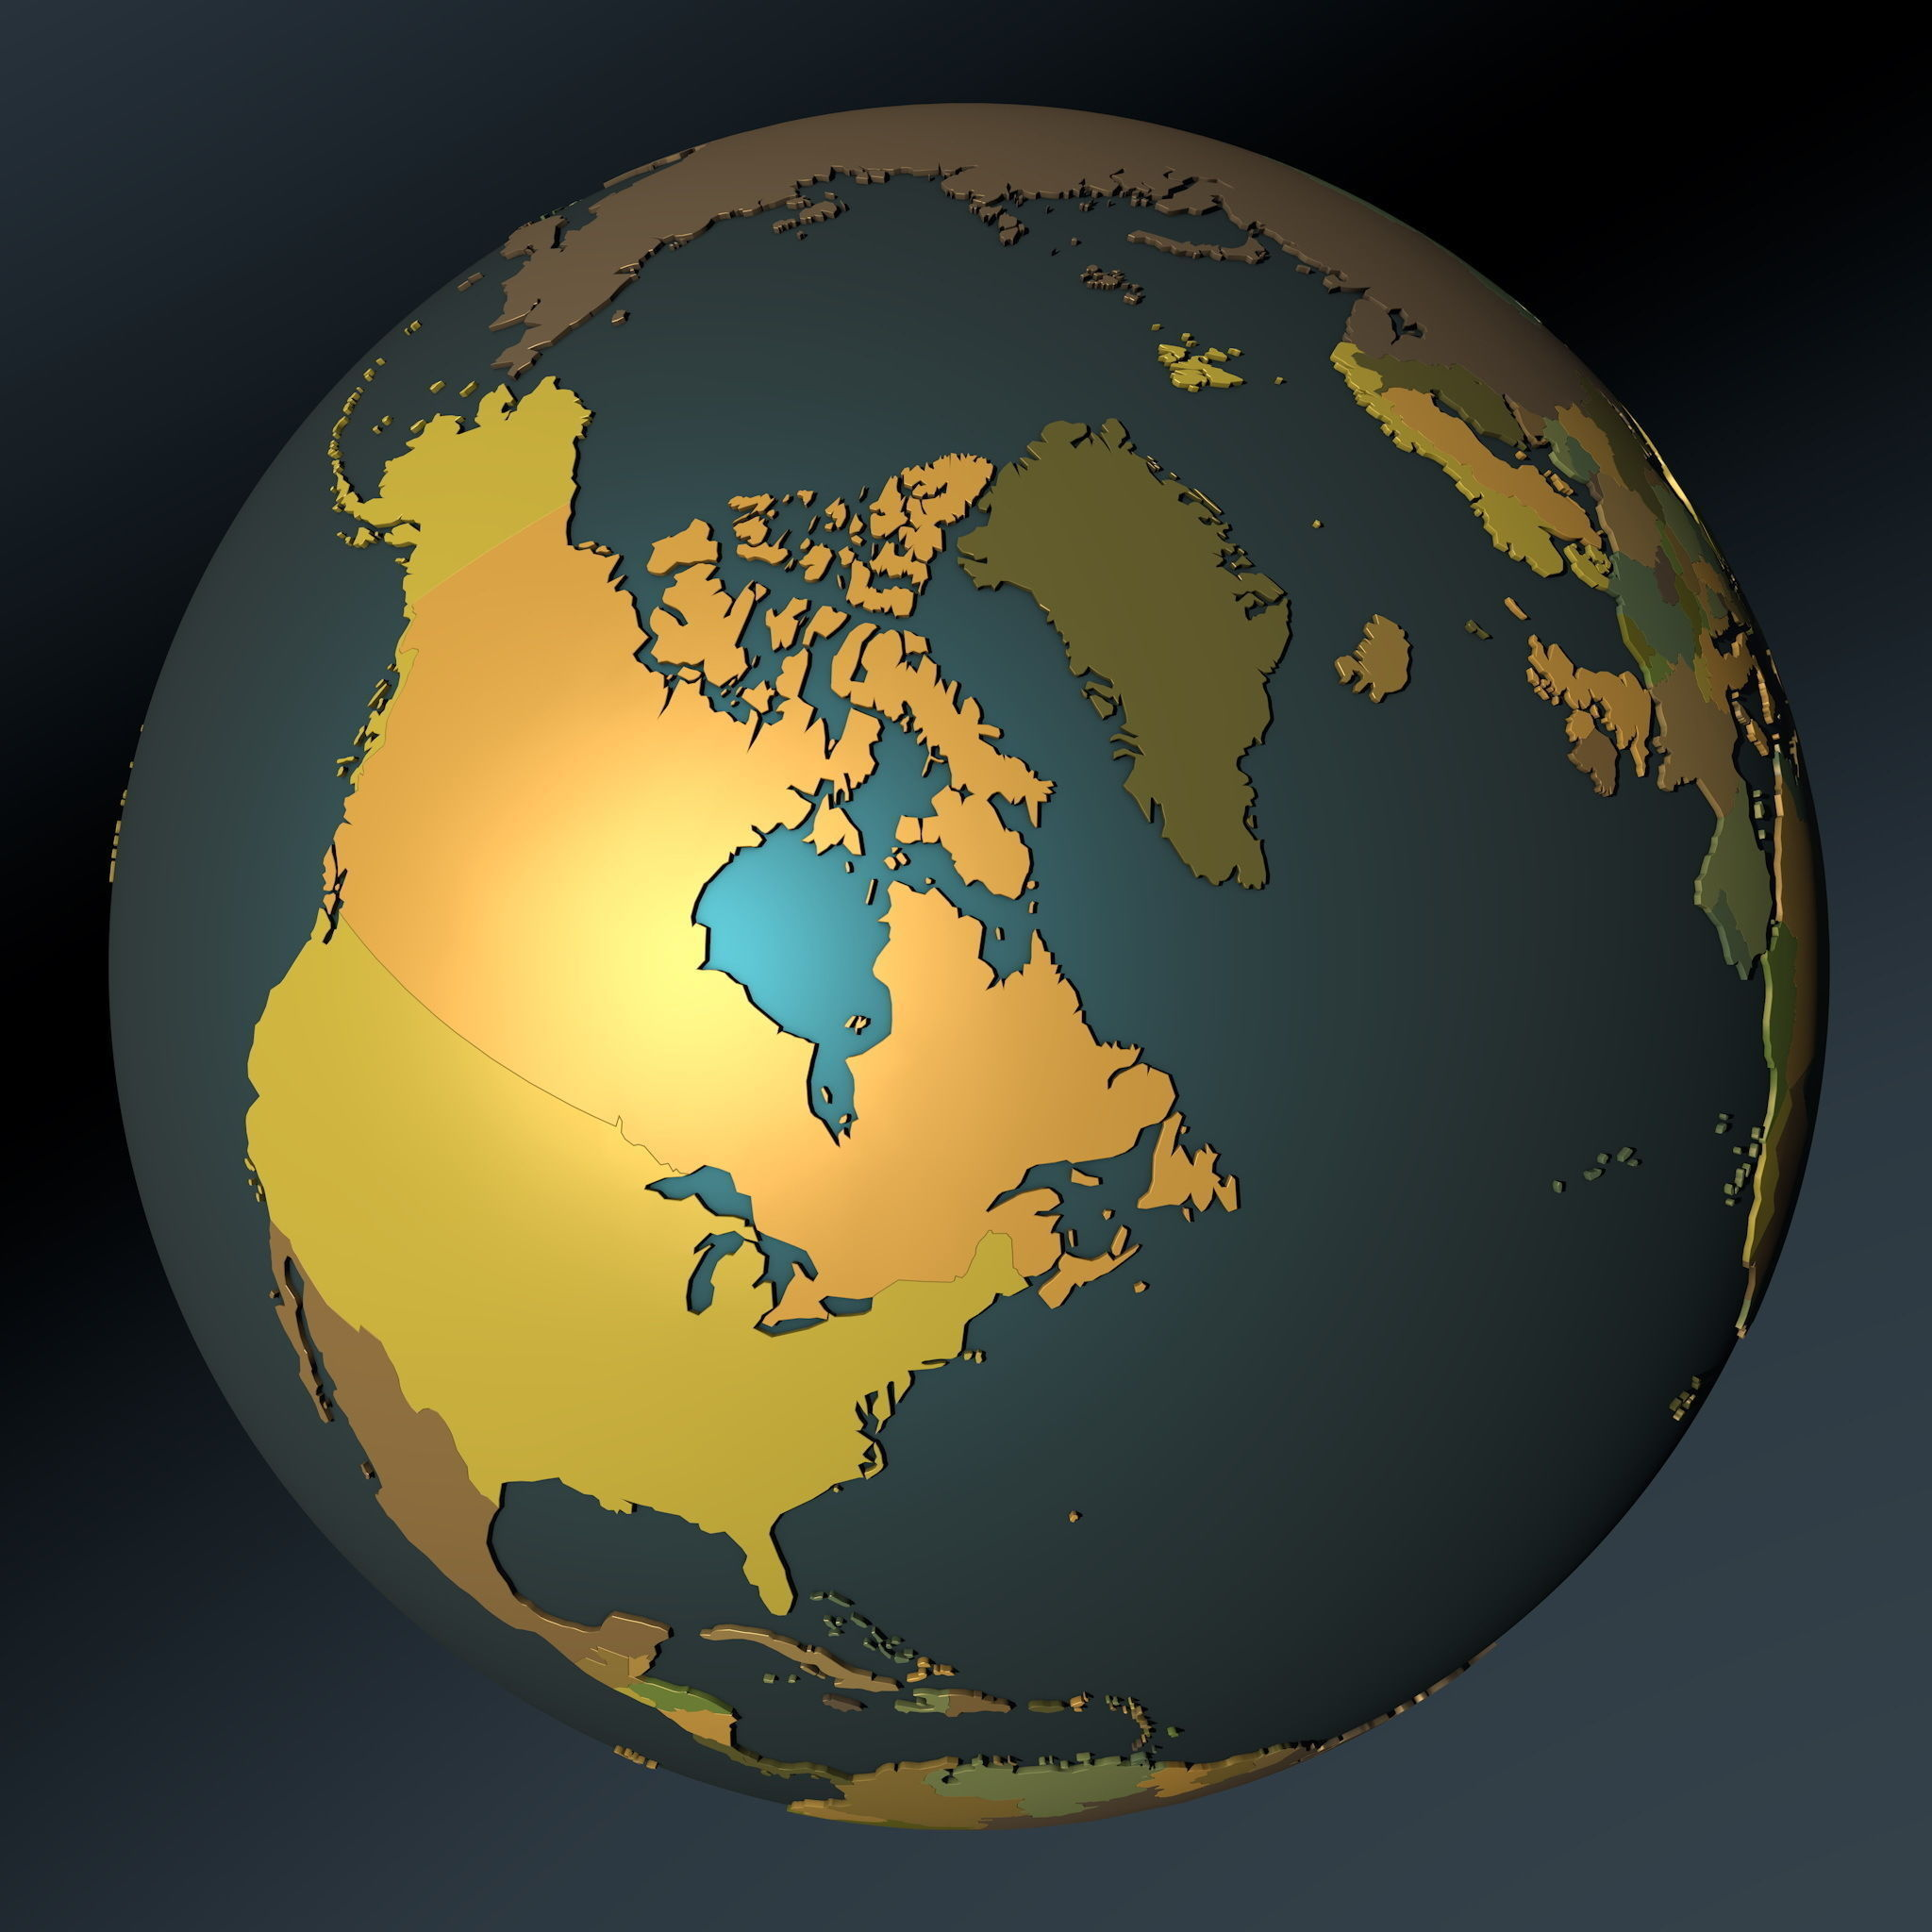 3d model political map earth globe with countries political map earth globe with countries 3d model obj fbx c4d mtl 4 gumiabroncs Choice Image